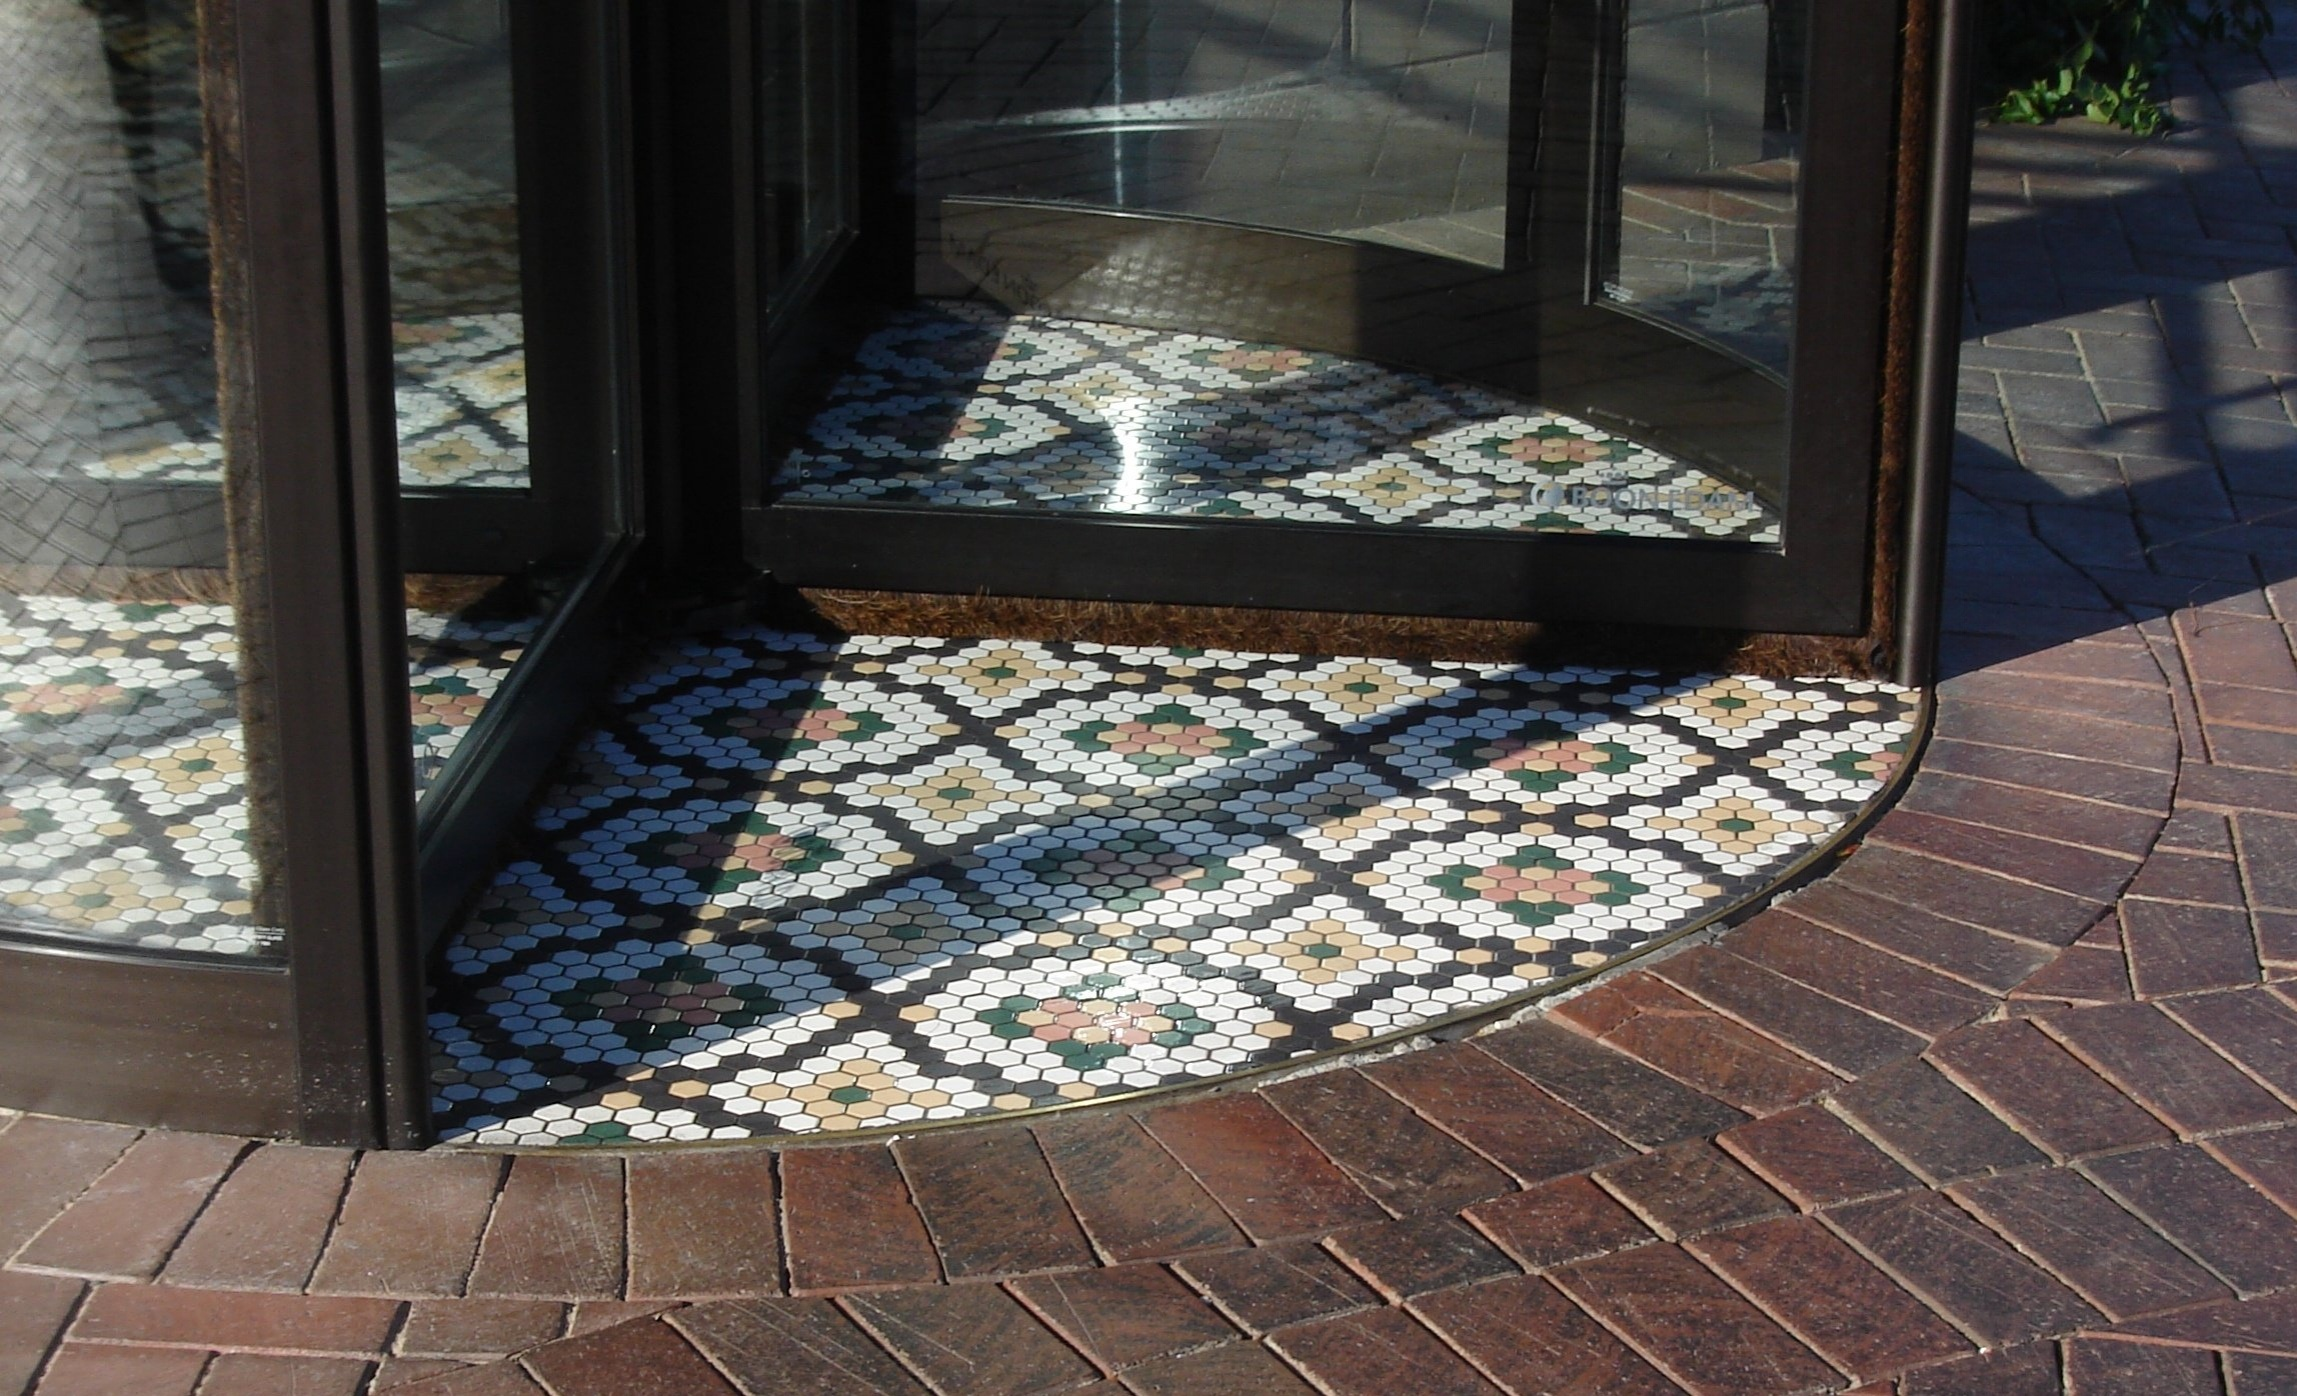 During revolving door installation, use a floor frame or matwell ring for a smooth transition strip